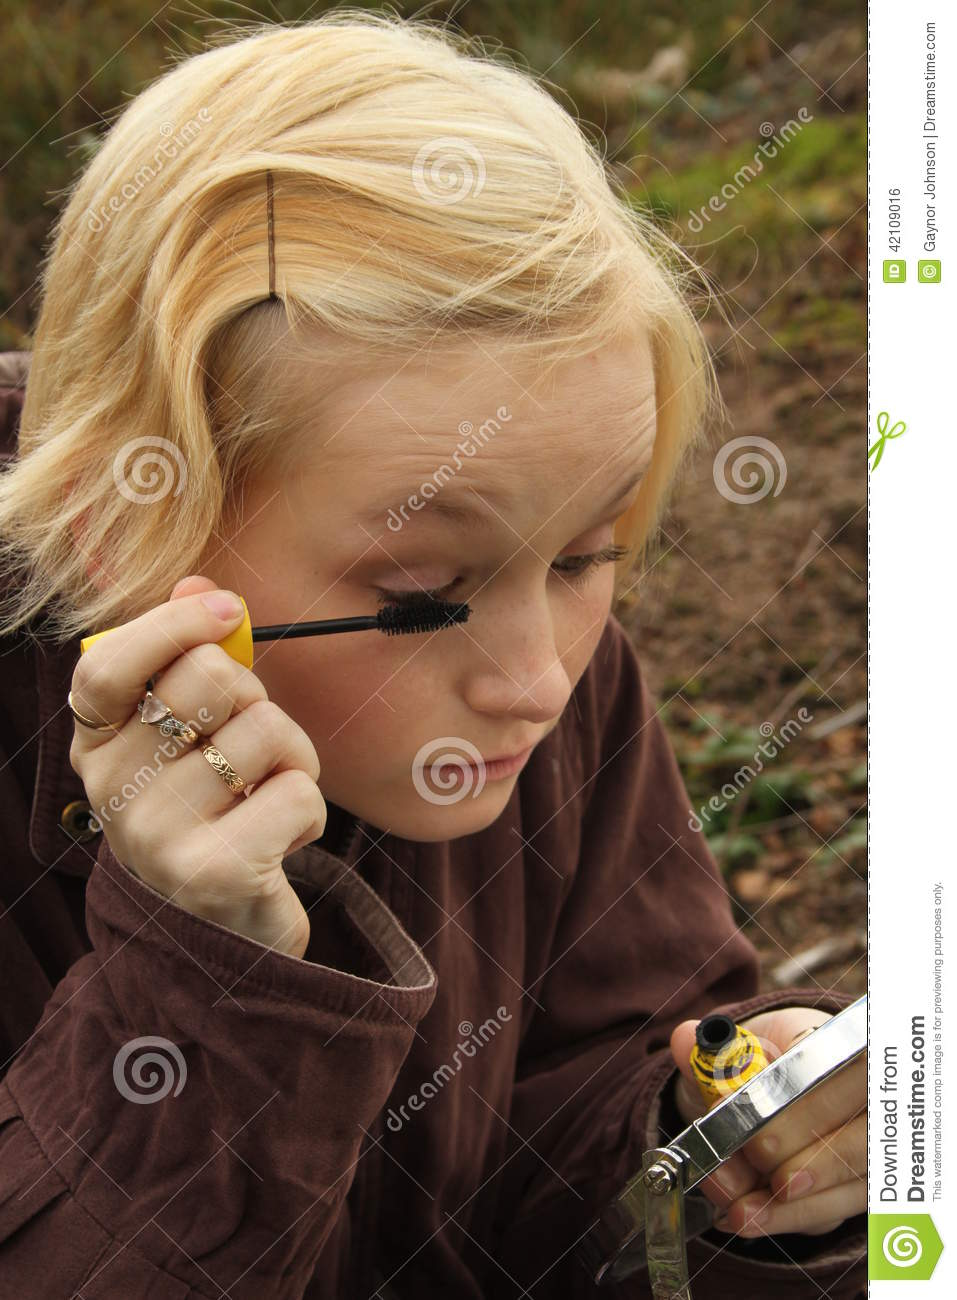 Young woman putting on make-up outdoors